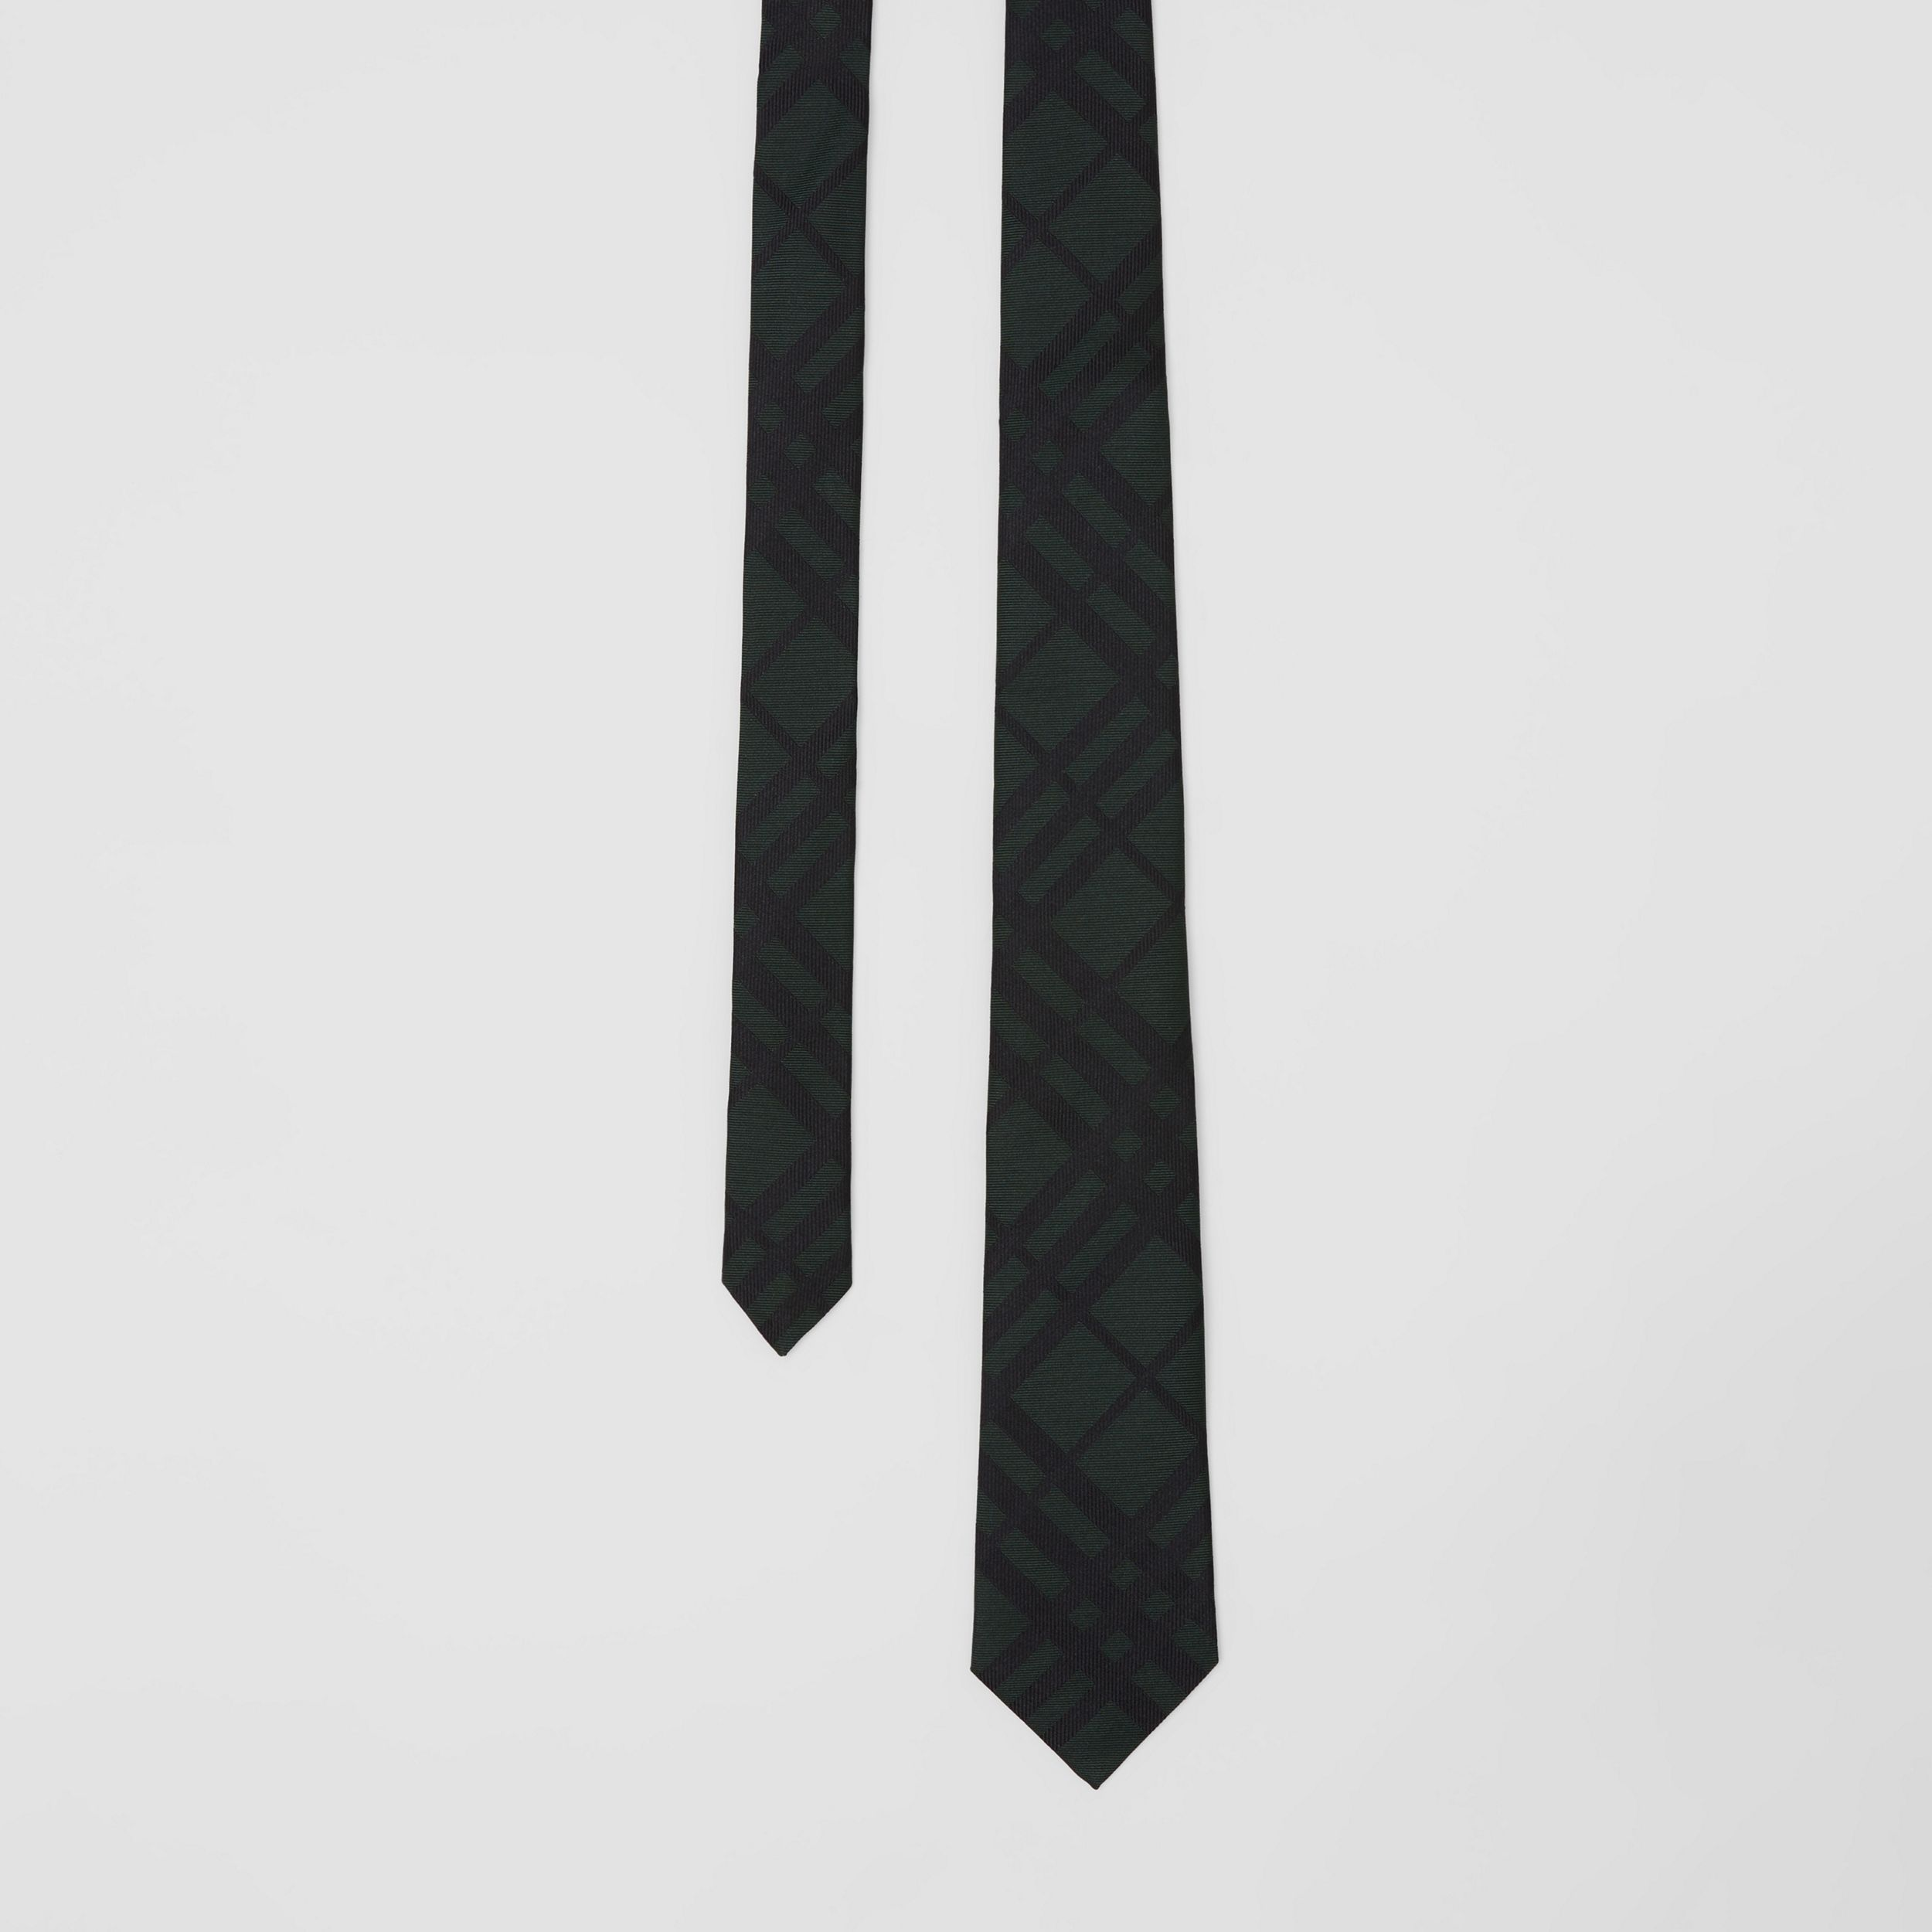 Classic Cut Check Silk Jacquard Tie in Dark Forest Green - Men | Burberry - 1